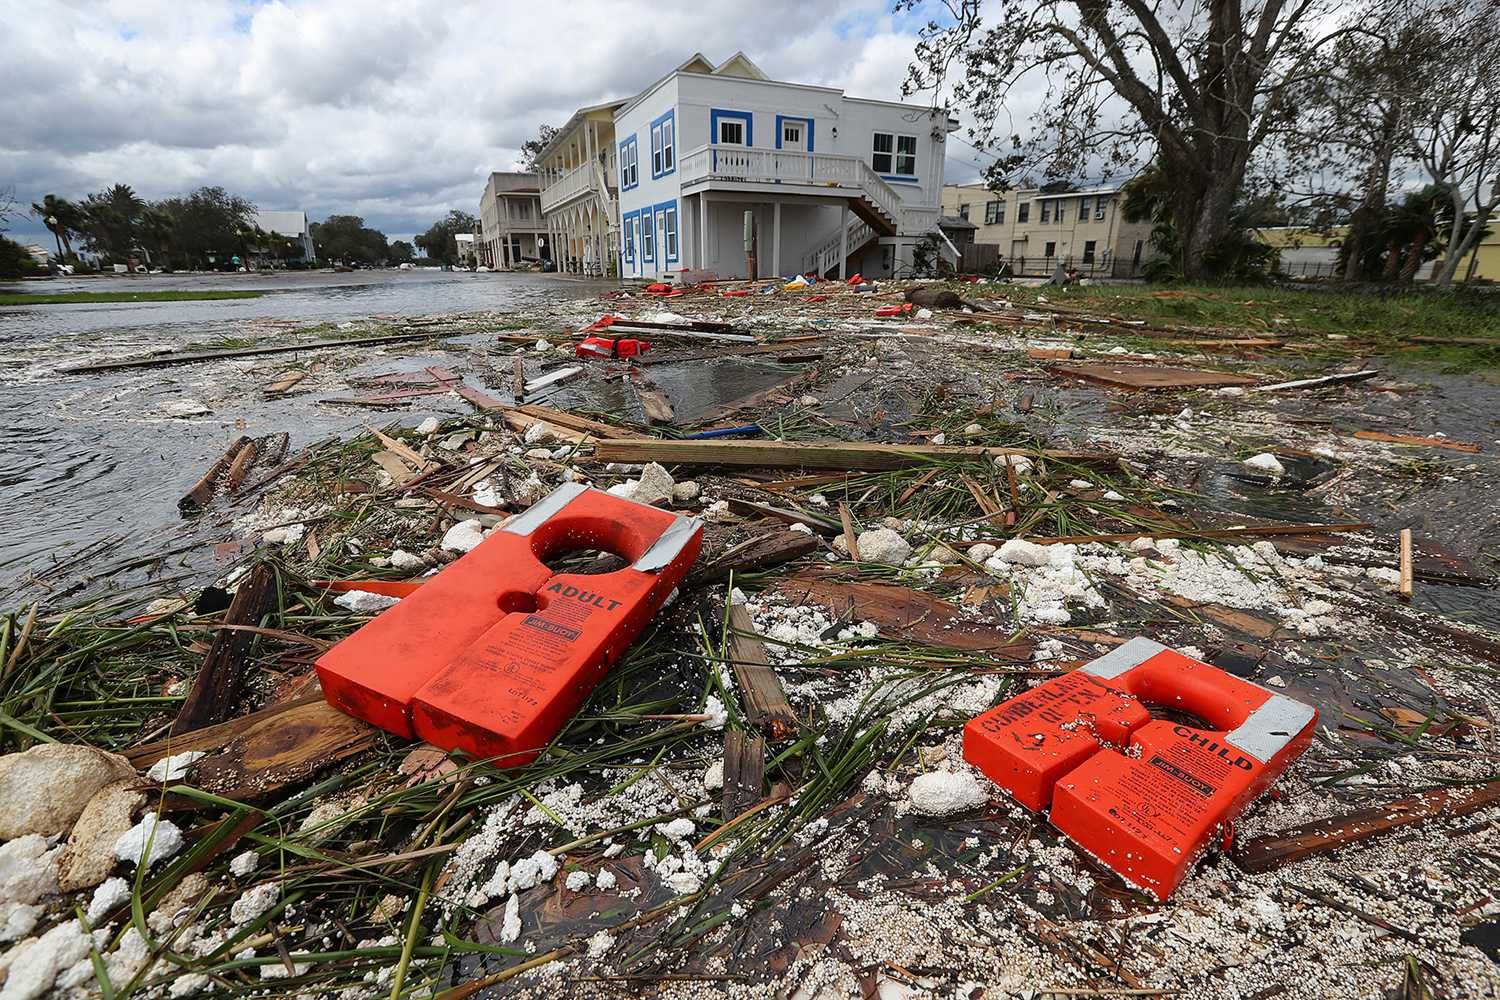 Life jackets for an adult and a child from the remains of the old Cumberland Queen Ferry, which sank, are part of the debris littering the flooded main street after Hurricane Irma swept through the area on Monday, Sept. 11, 2017, in St. Marys, Ga. (Curtis Compton/Atlanta Journal-Constitution/TNS)